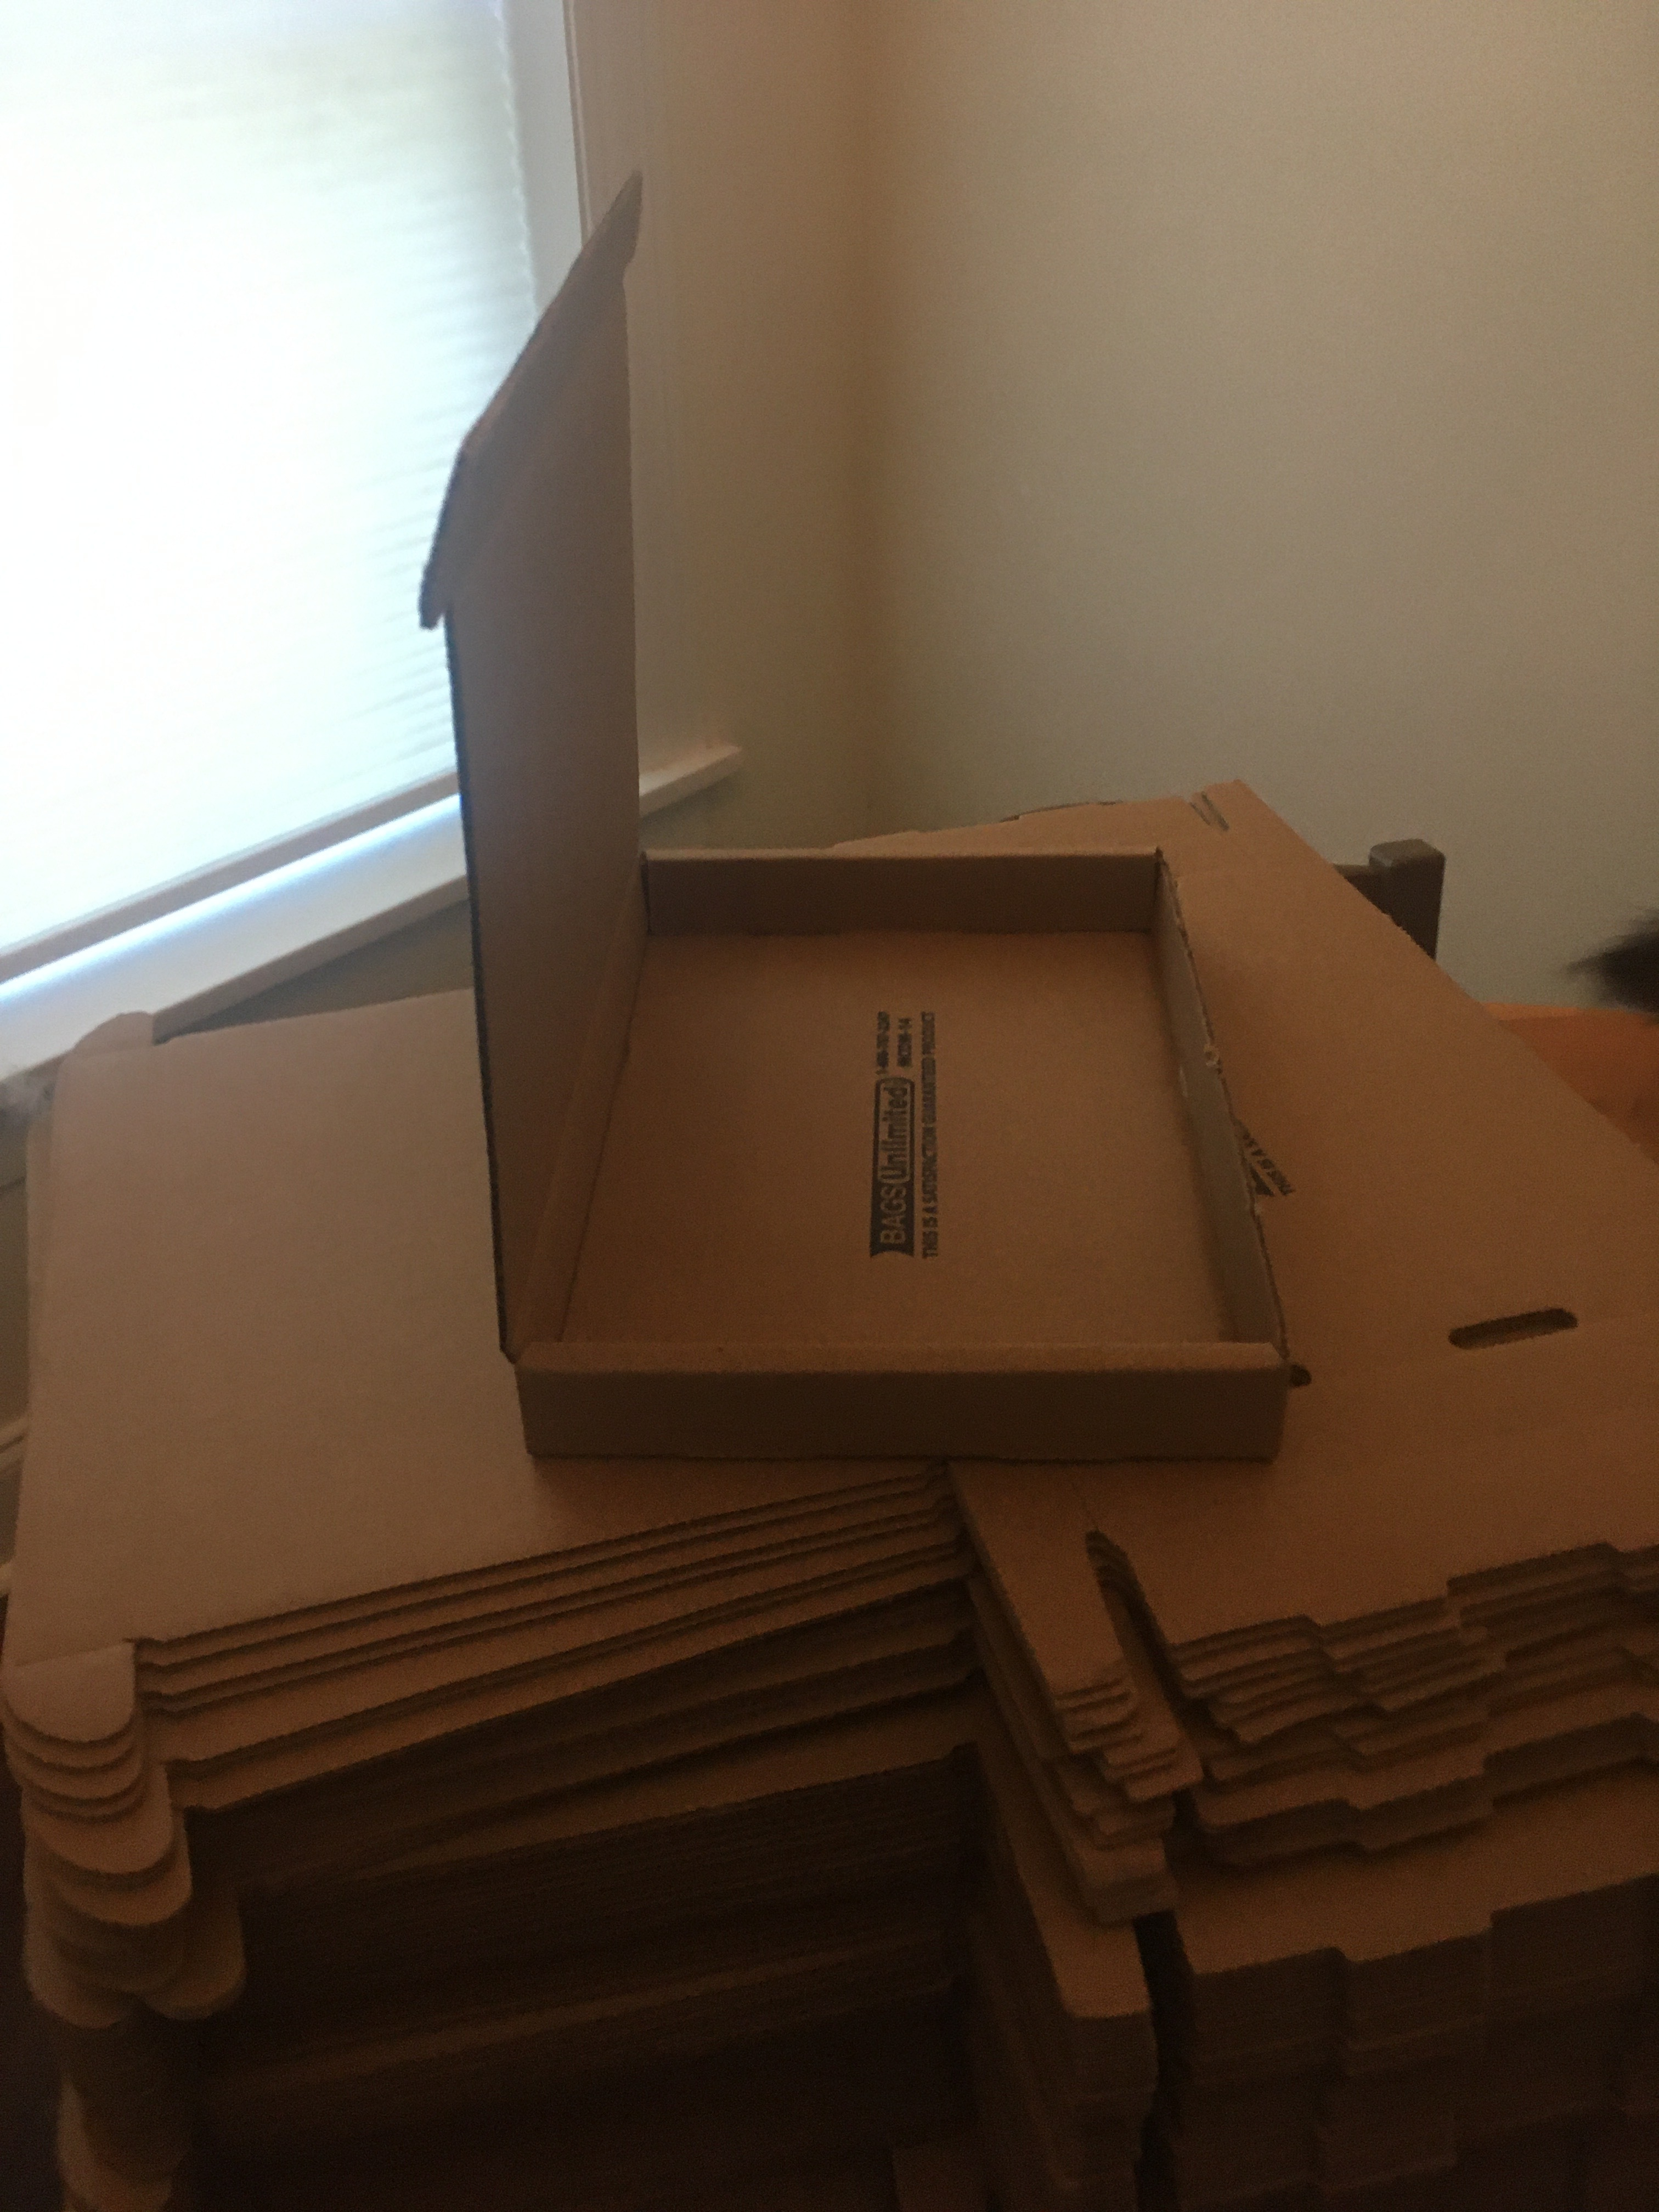 An image of foldable boxes